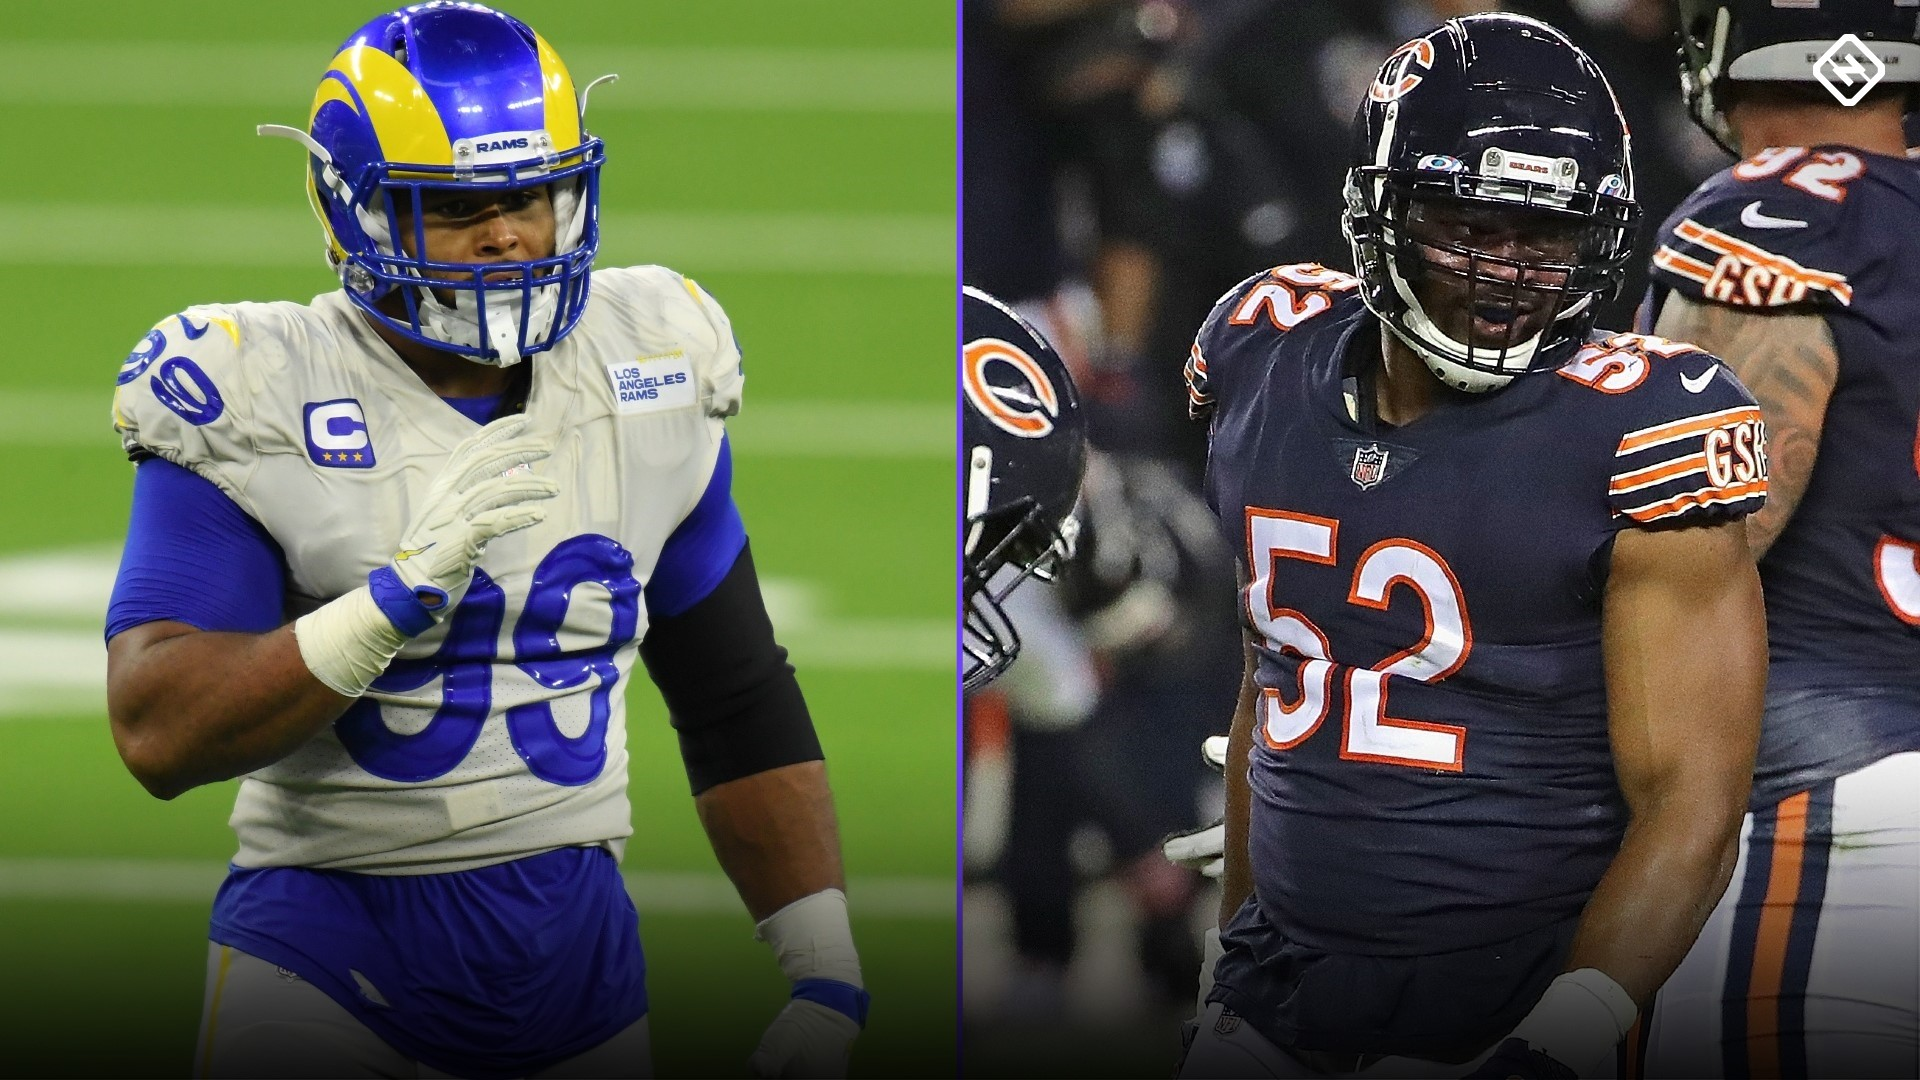 NFL Draft 2014, revisited: How Aaron Donald, Khalil Mack became the best two picks from loaded a class